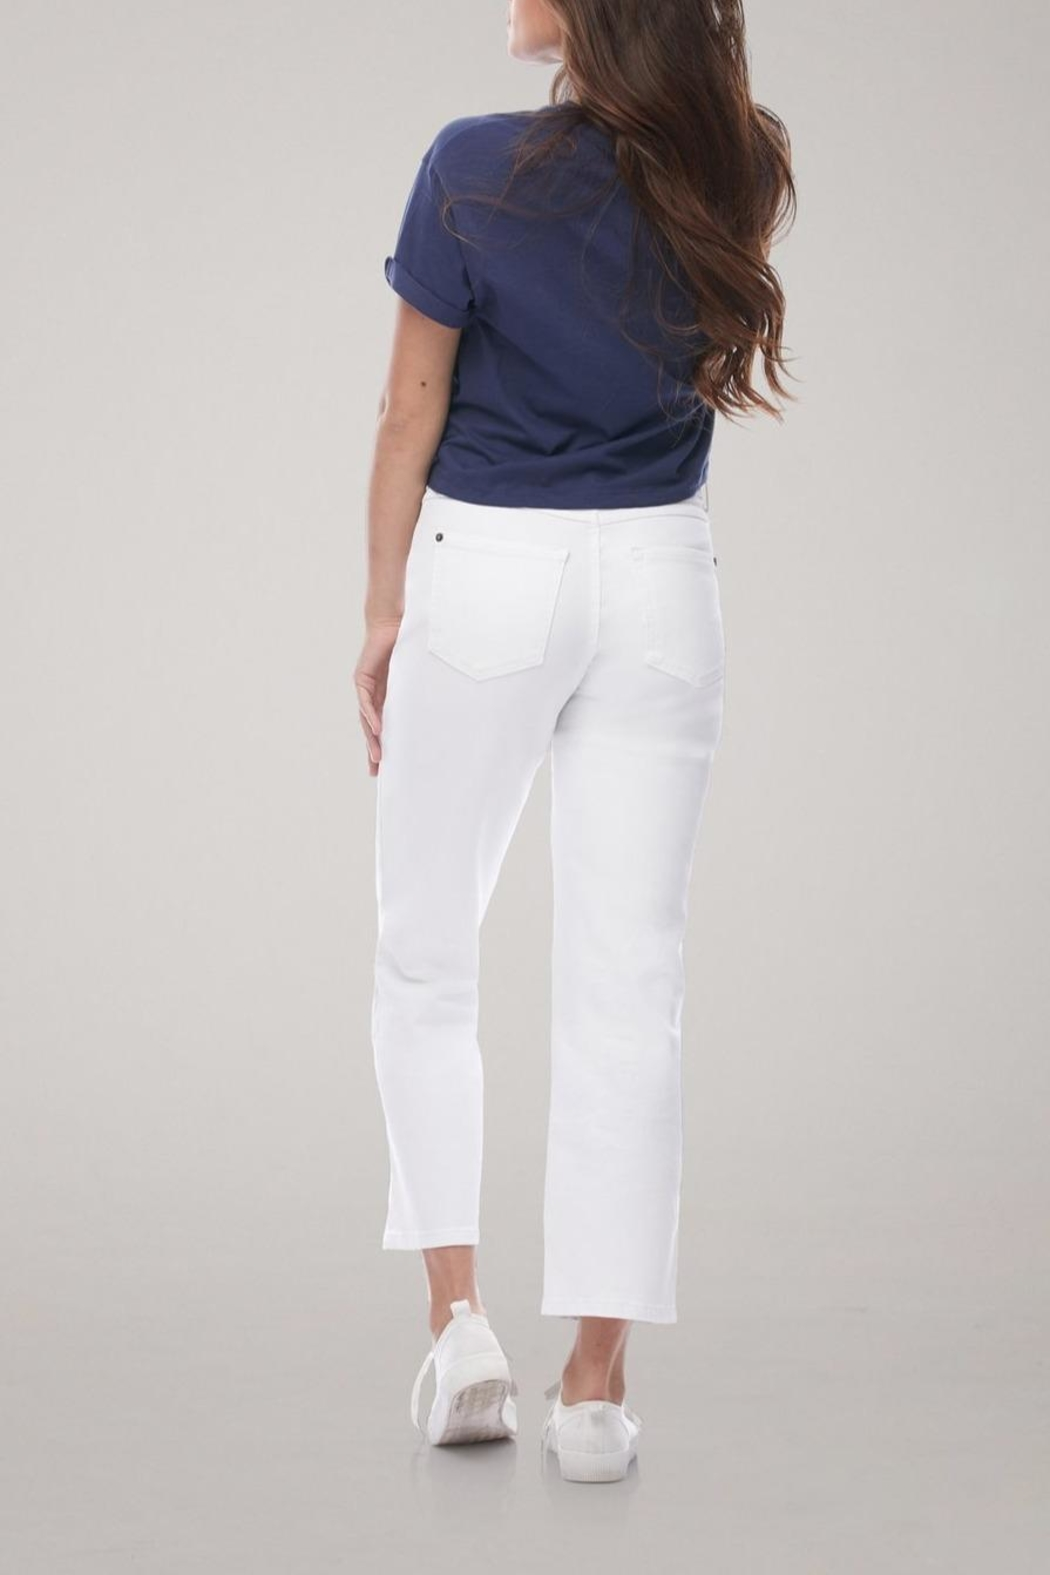 Yoga Jeans Cropped Straight Leg Jean - Side Cropped Image